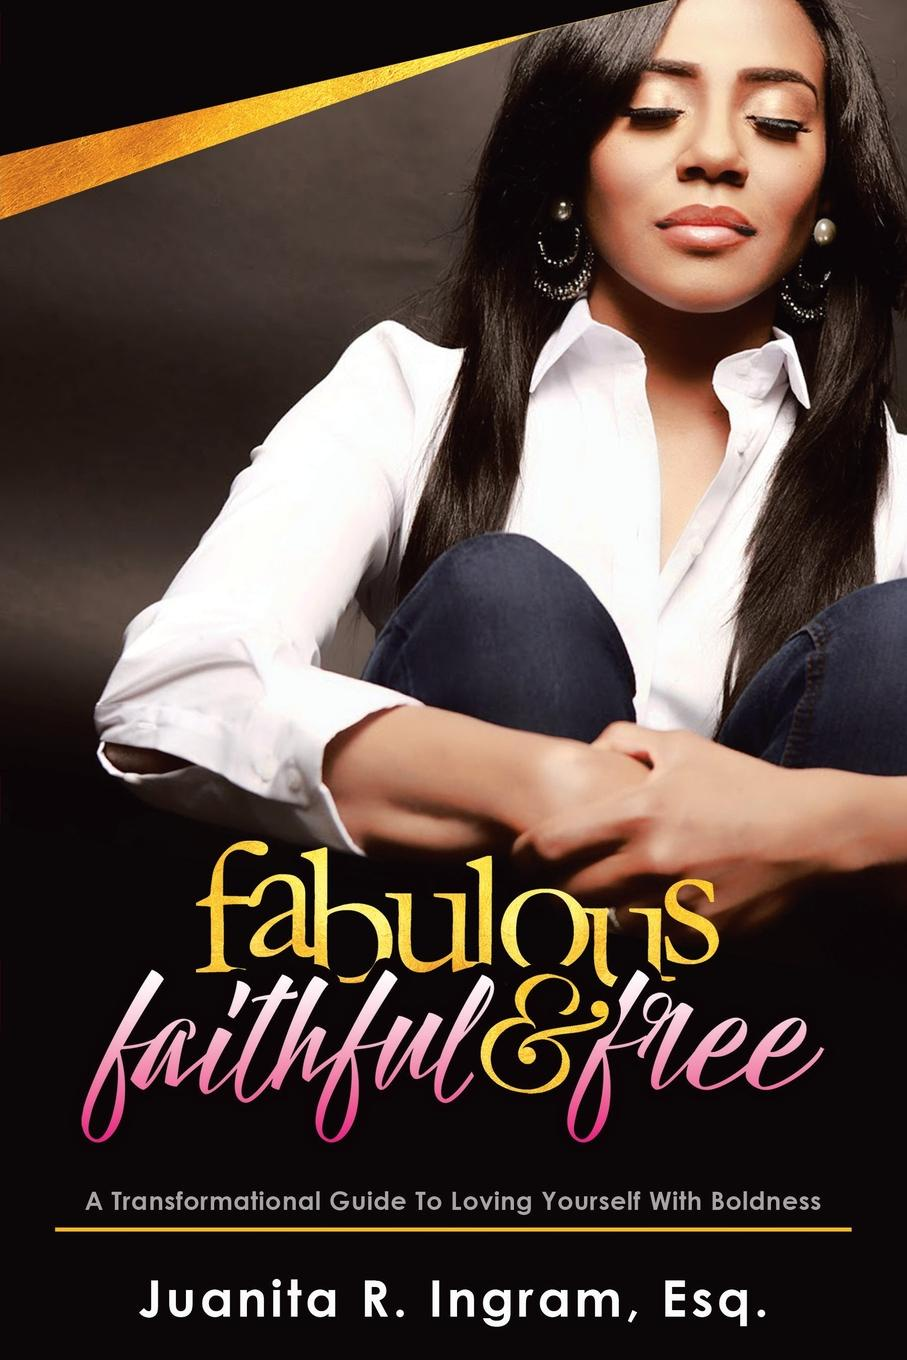 Fabulous Faithful . Free. A Transformational Guide to Loving Yourself with Boldness Are you stuck in a dead-end situationР? Do you know you have great...